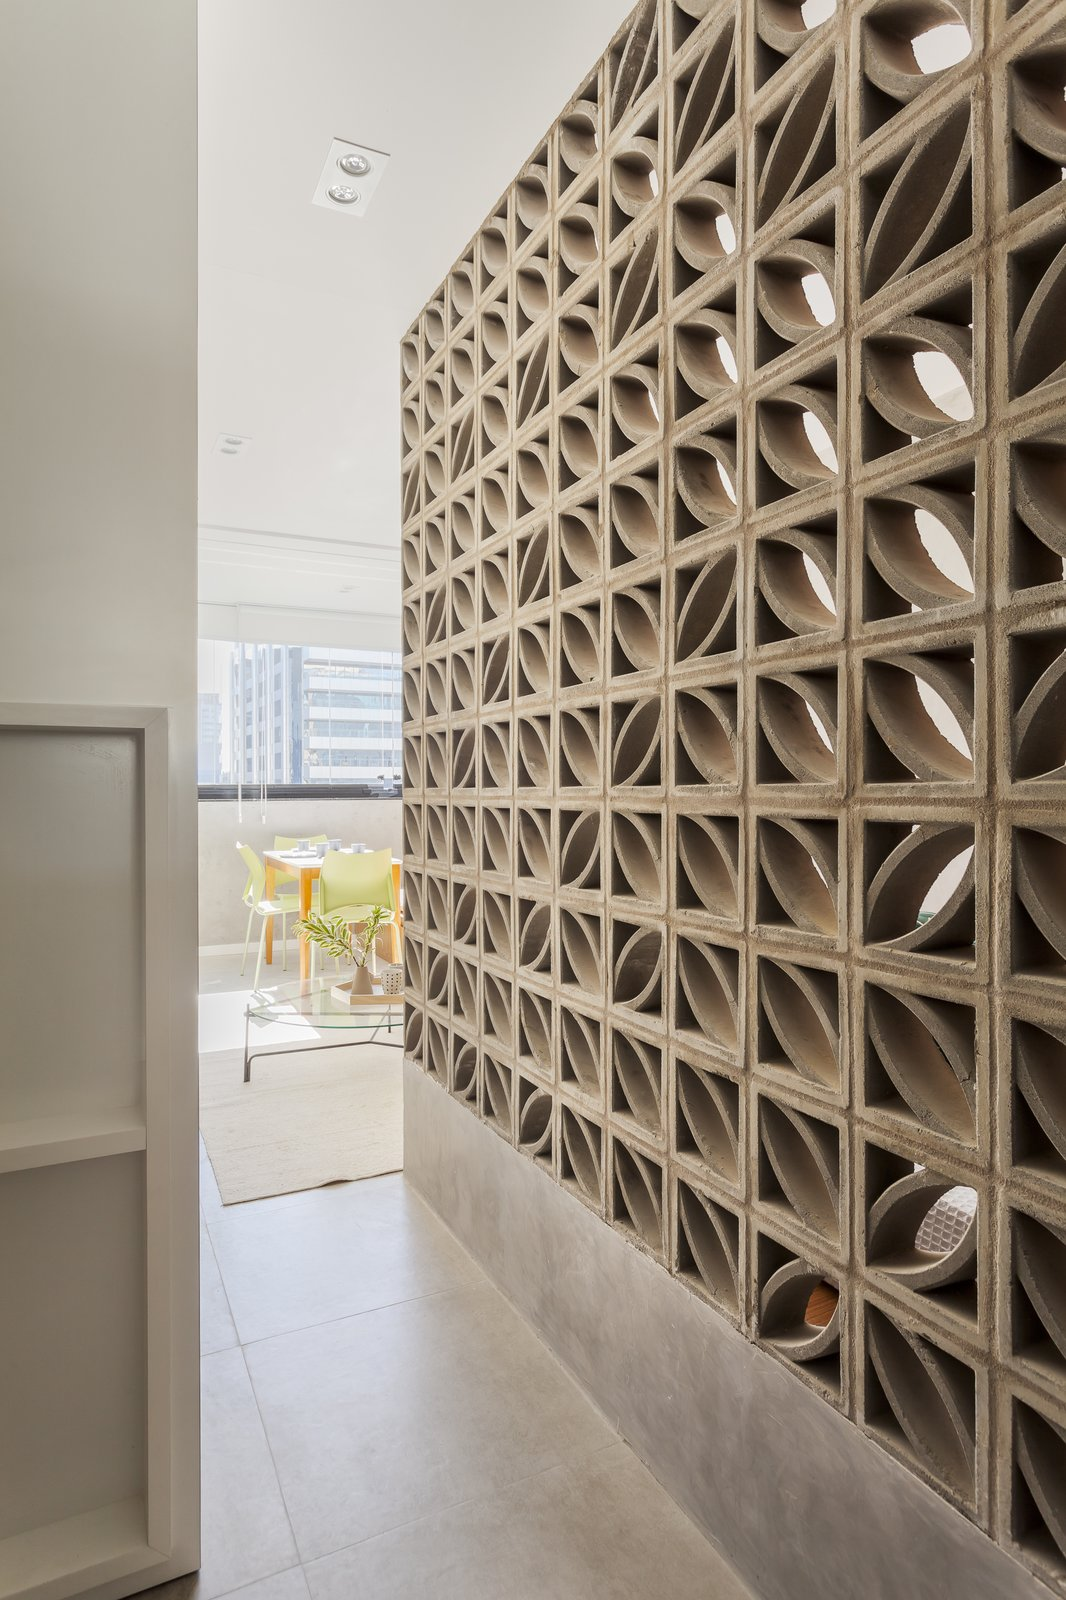 Hallway  Photo 4 of 9 in A 290-Square-Foot Apartment in São Paulo Takes Advantage of Every Inch